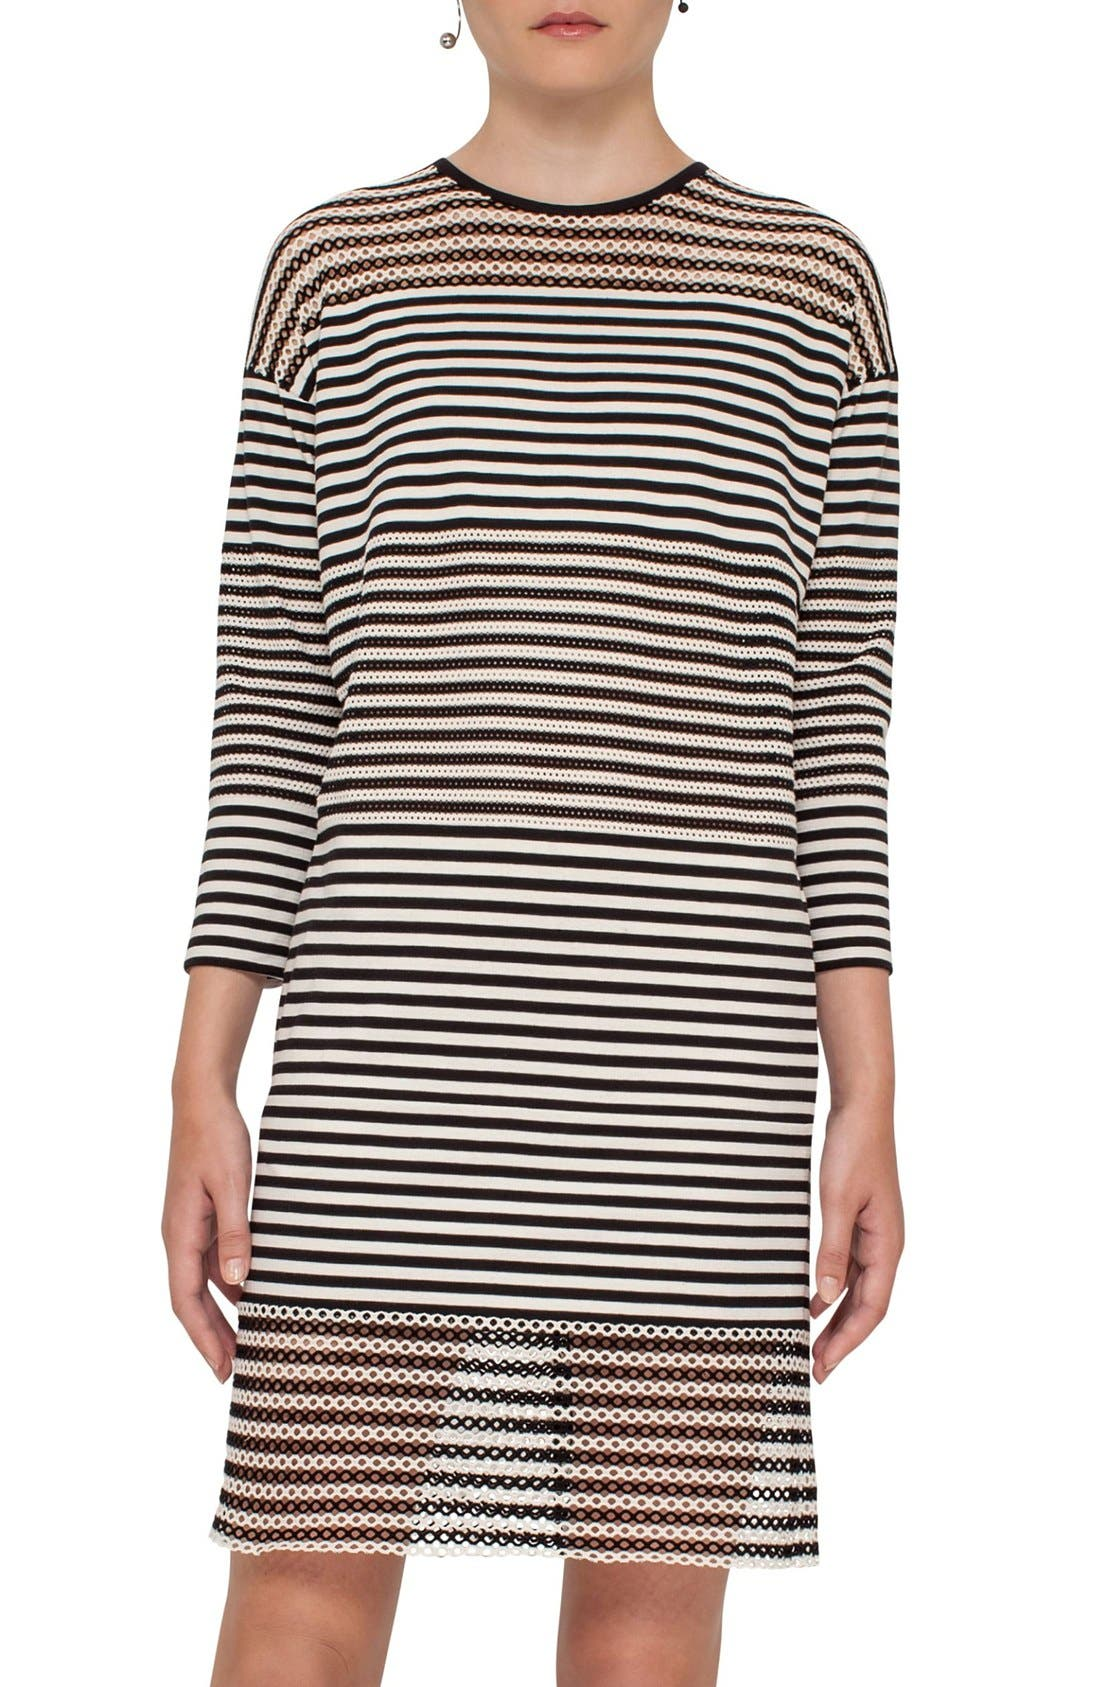 AKRIS PUNTO Mesh Inset Stripe Stretch Cotton Dress